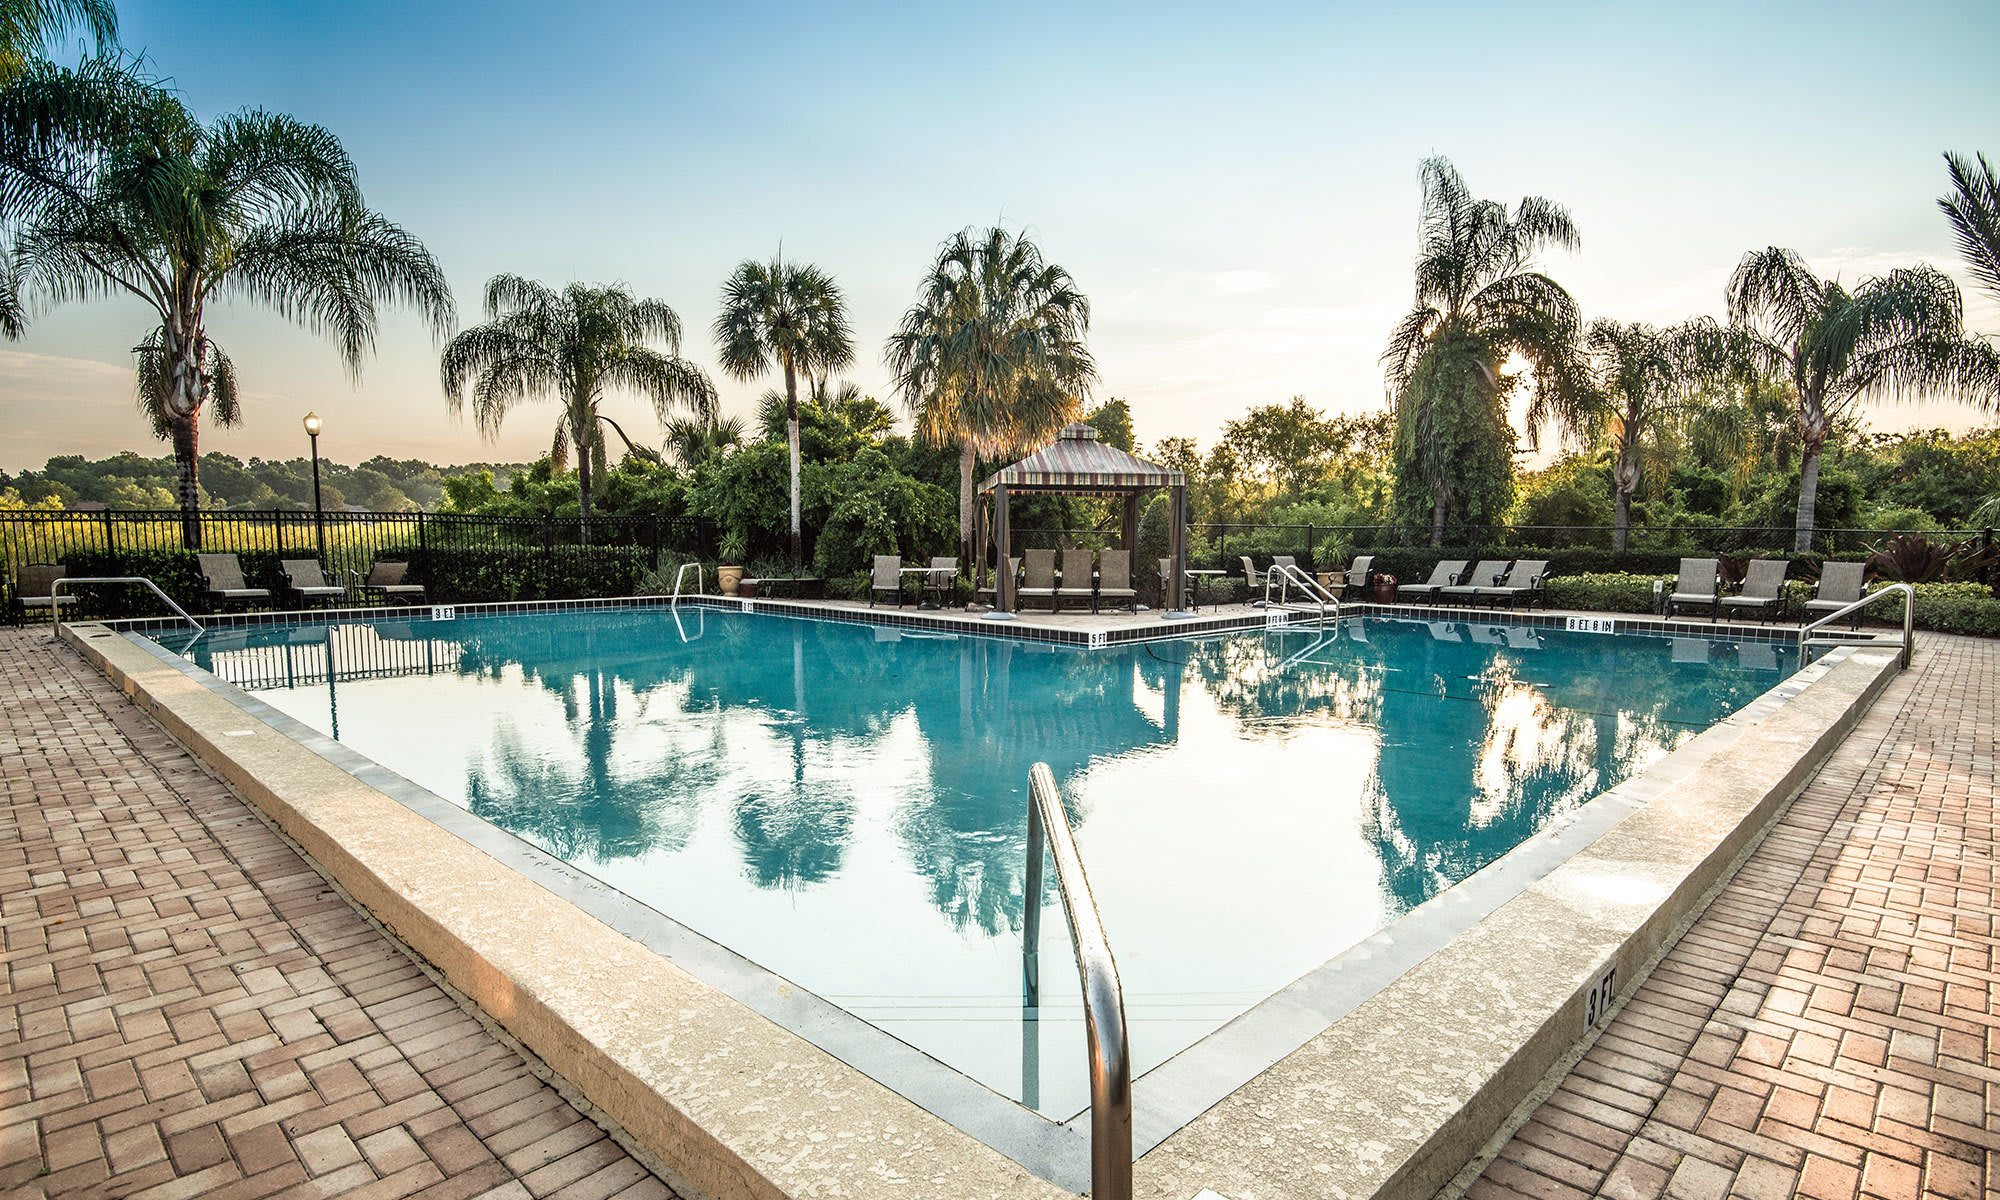 Apartments in Altamonte Springs, FL